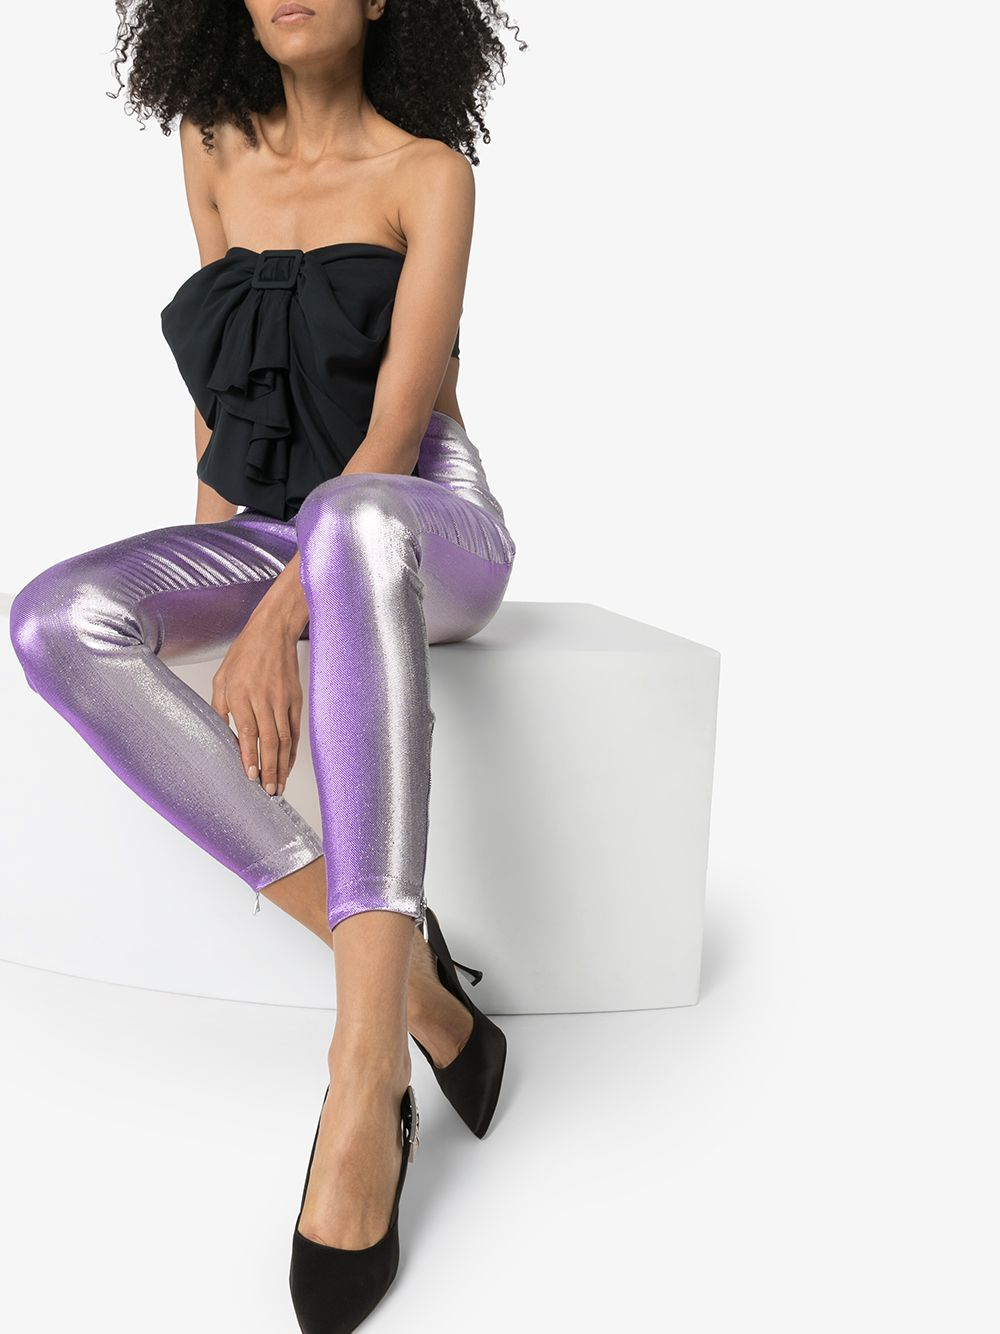 Iridescent Effect Leggings On Model